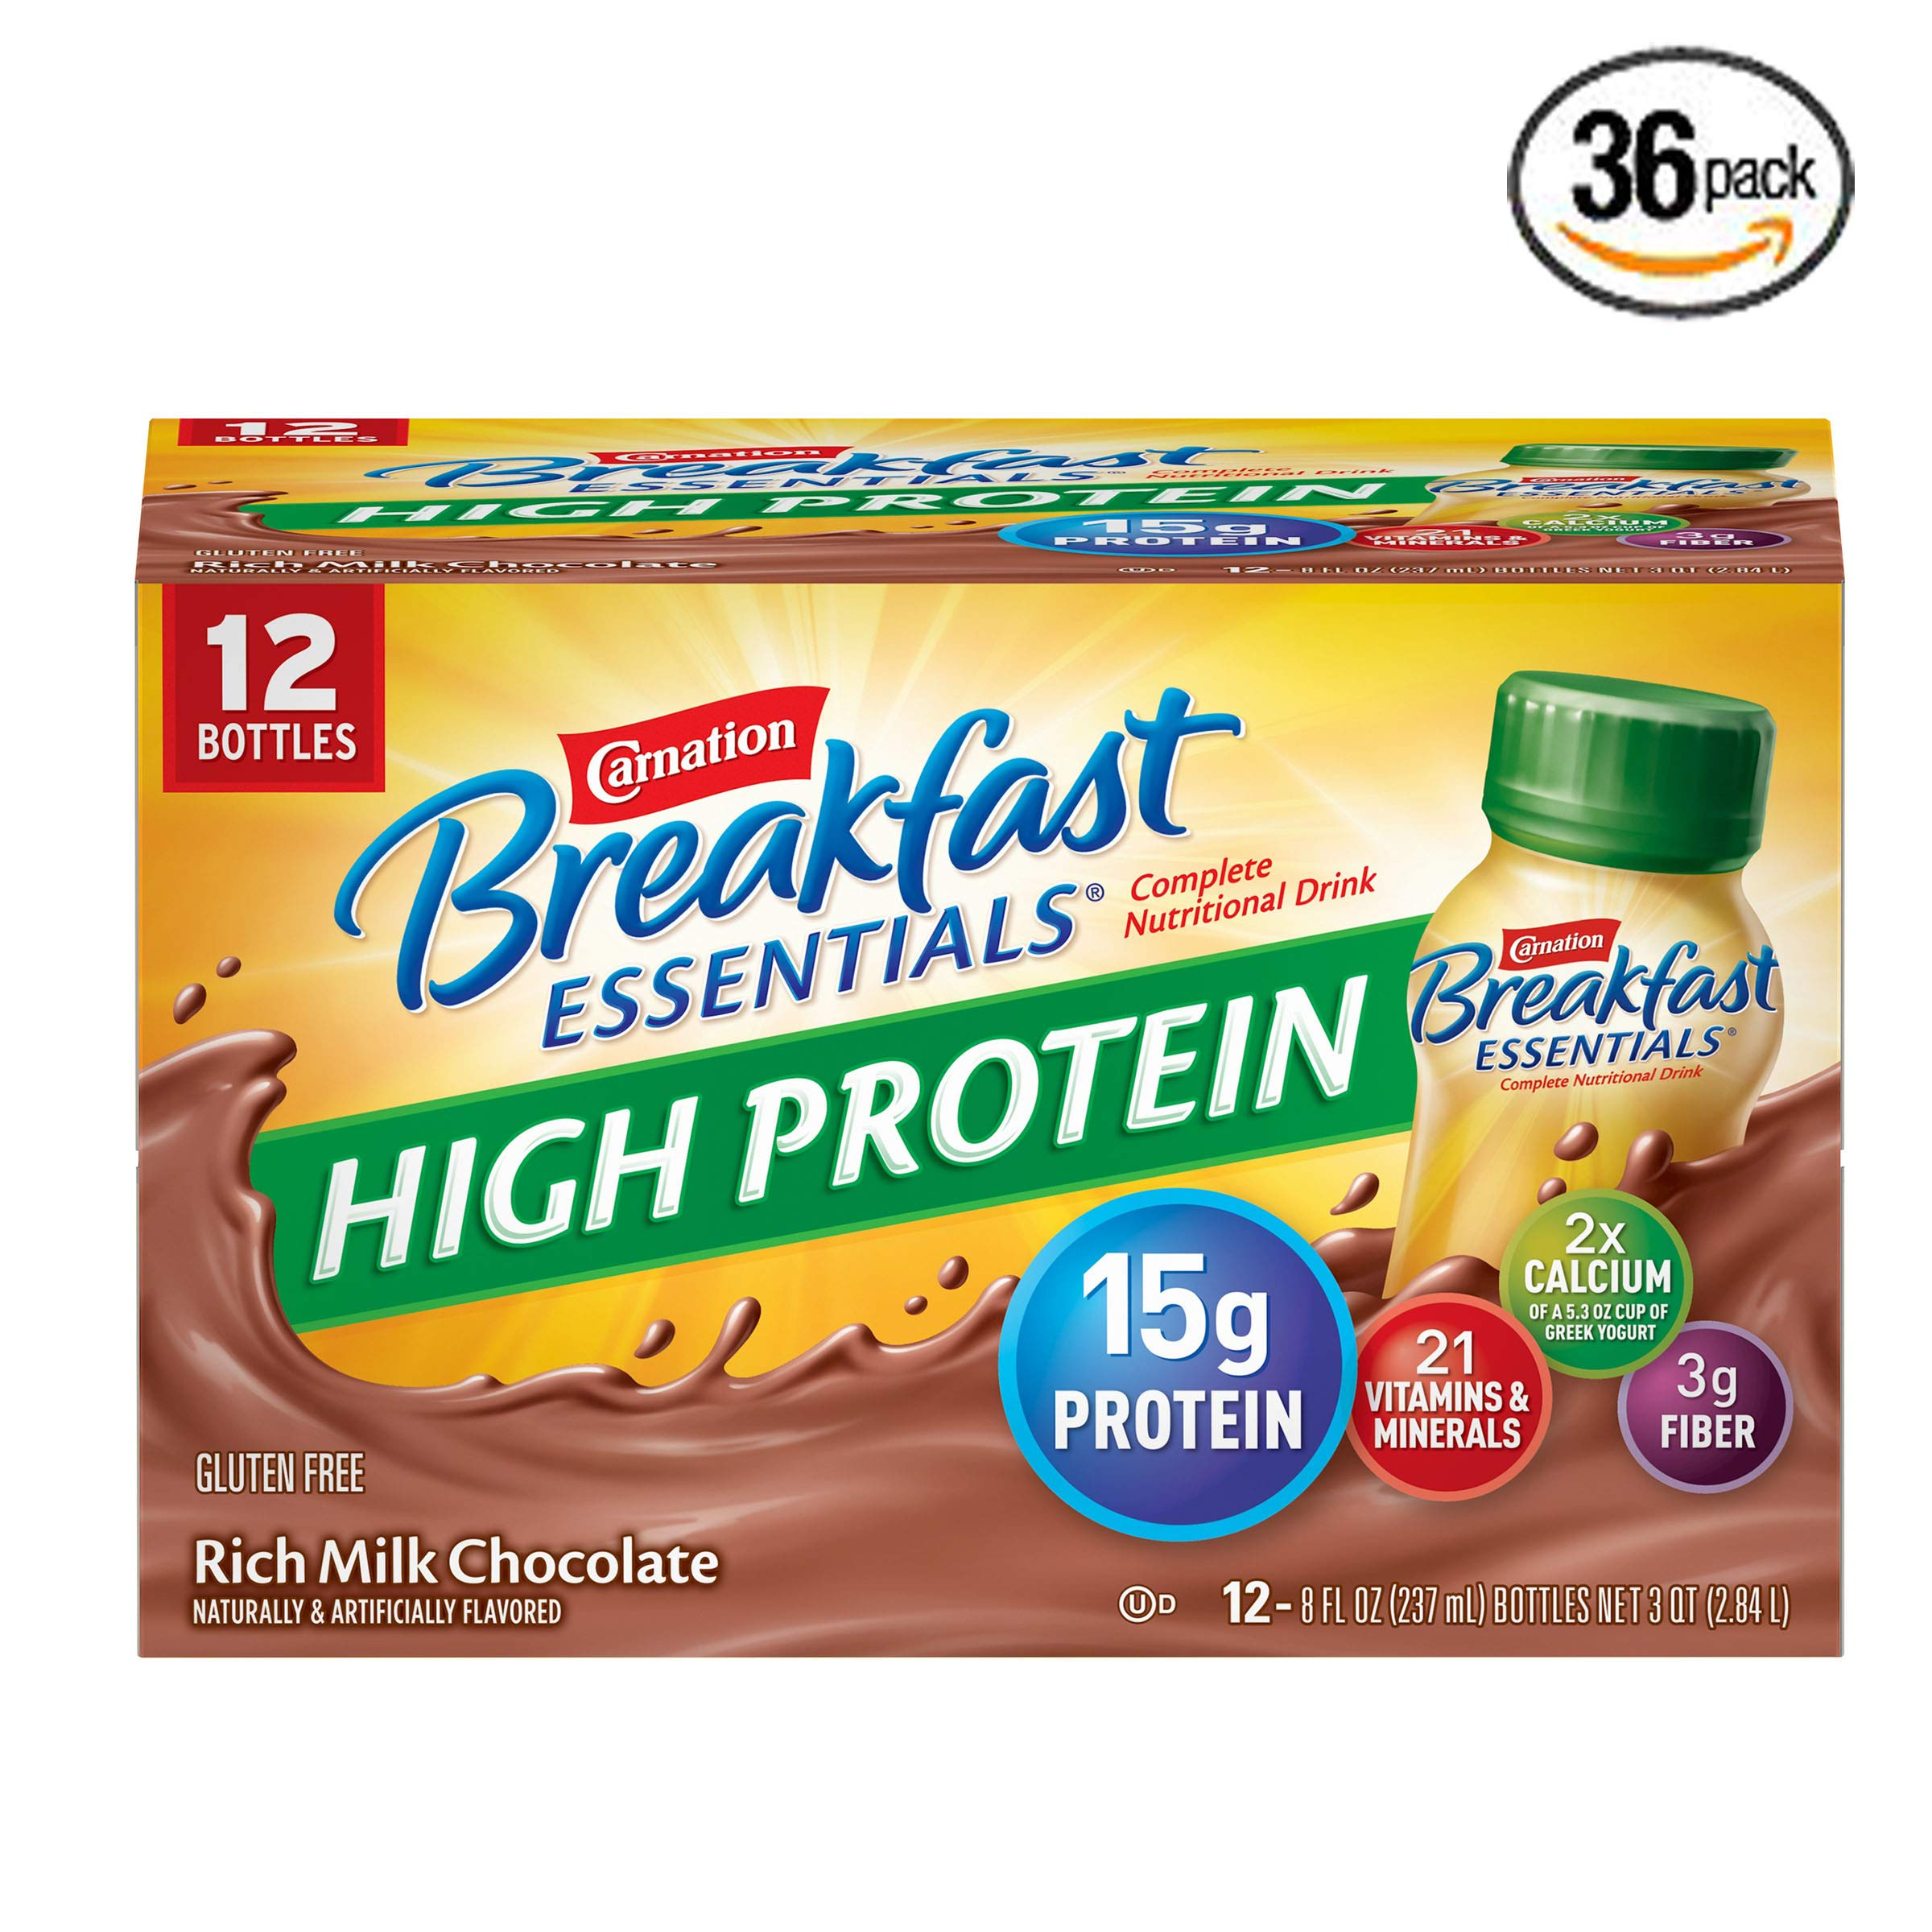 Carnation Breakfast Essentials High Protein Ready To Drink, Rich Milk Chocolate, 8 Fluid Ounce - Pack of 36